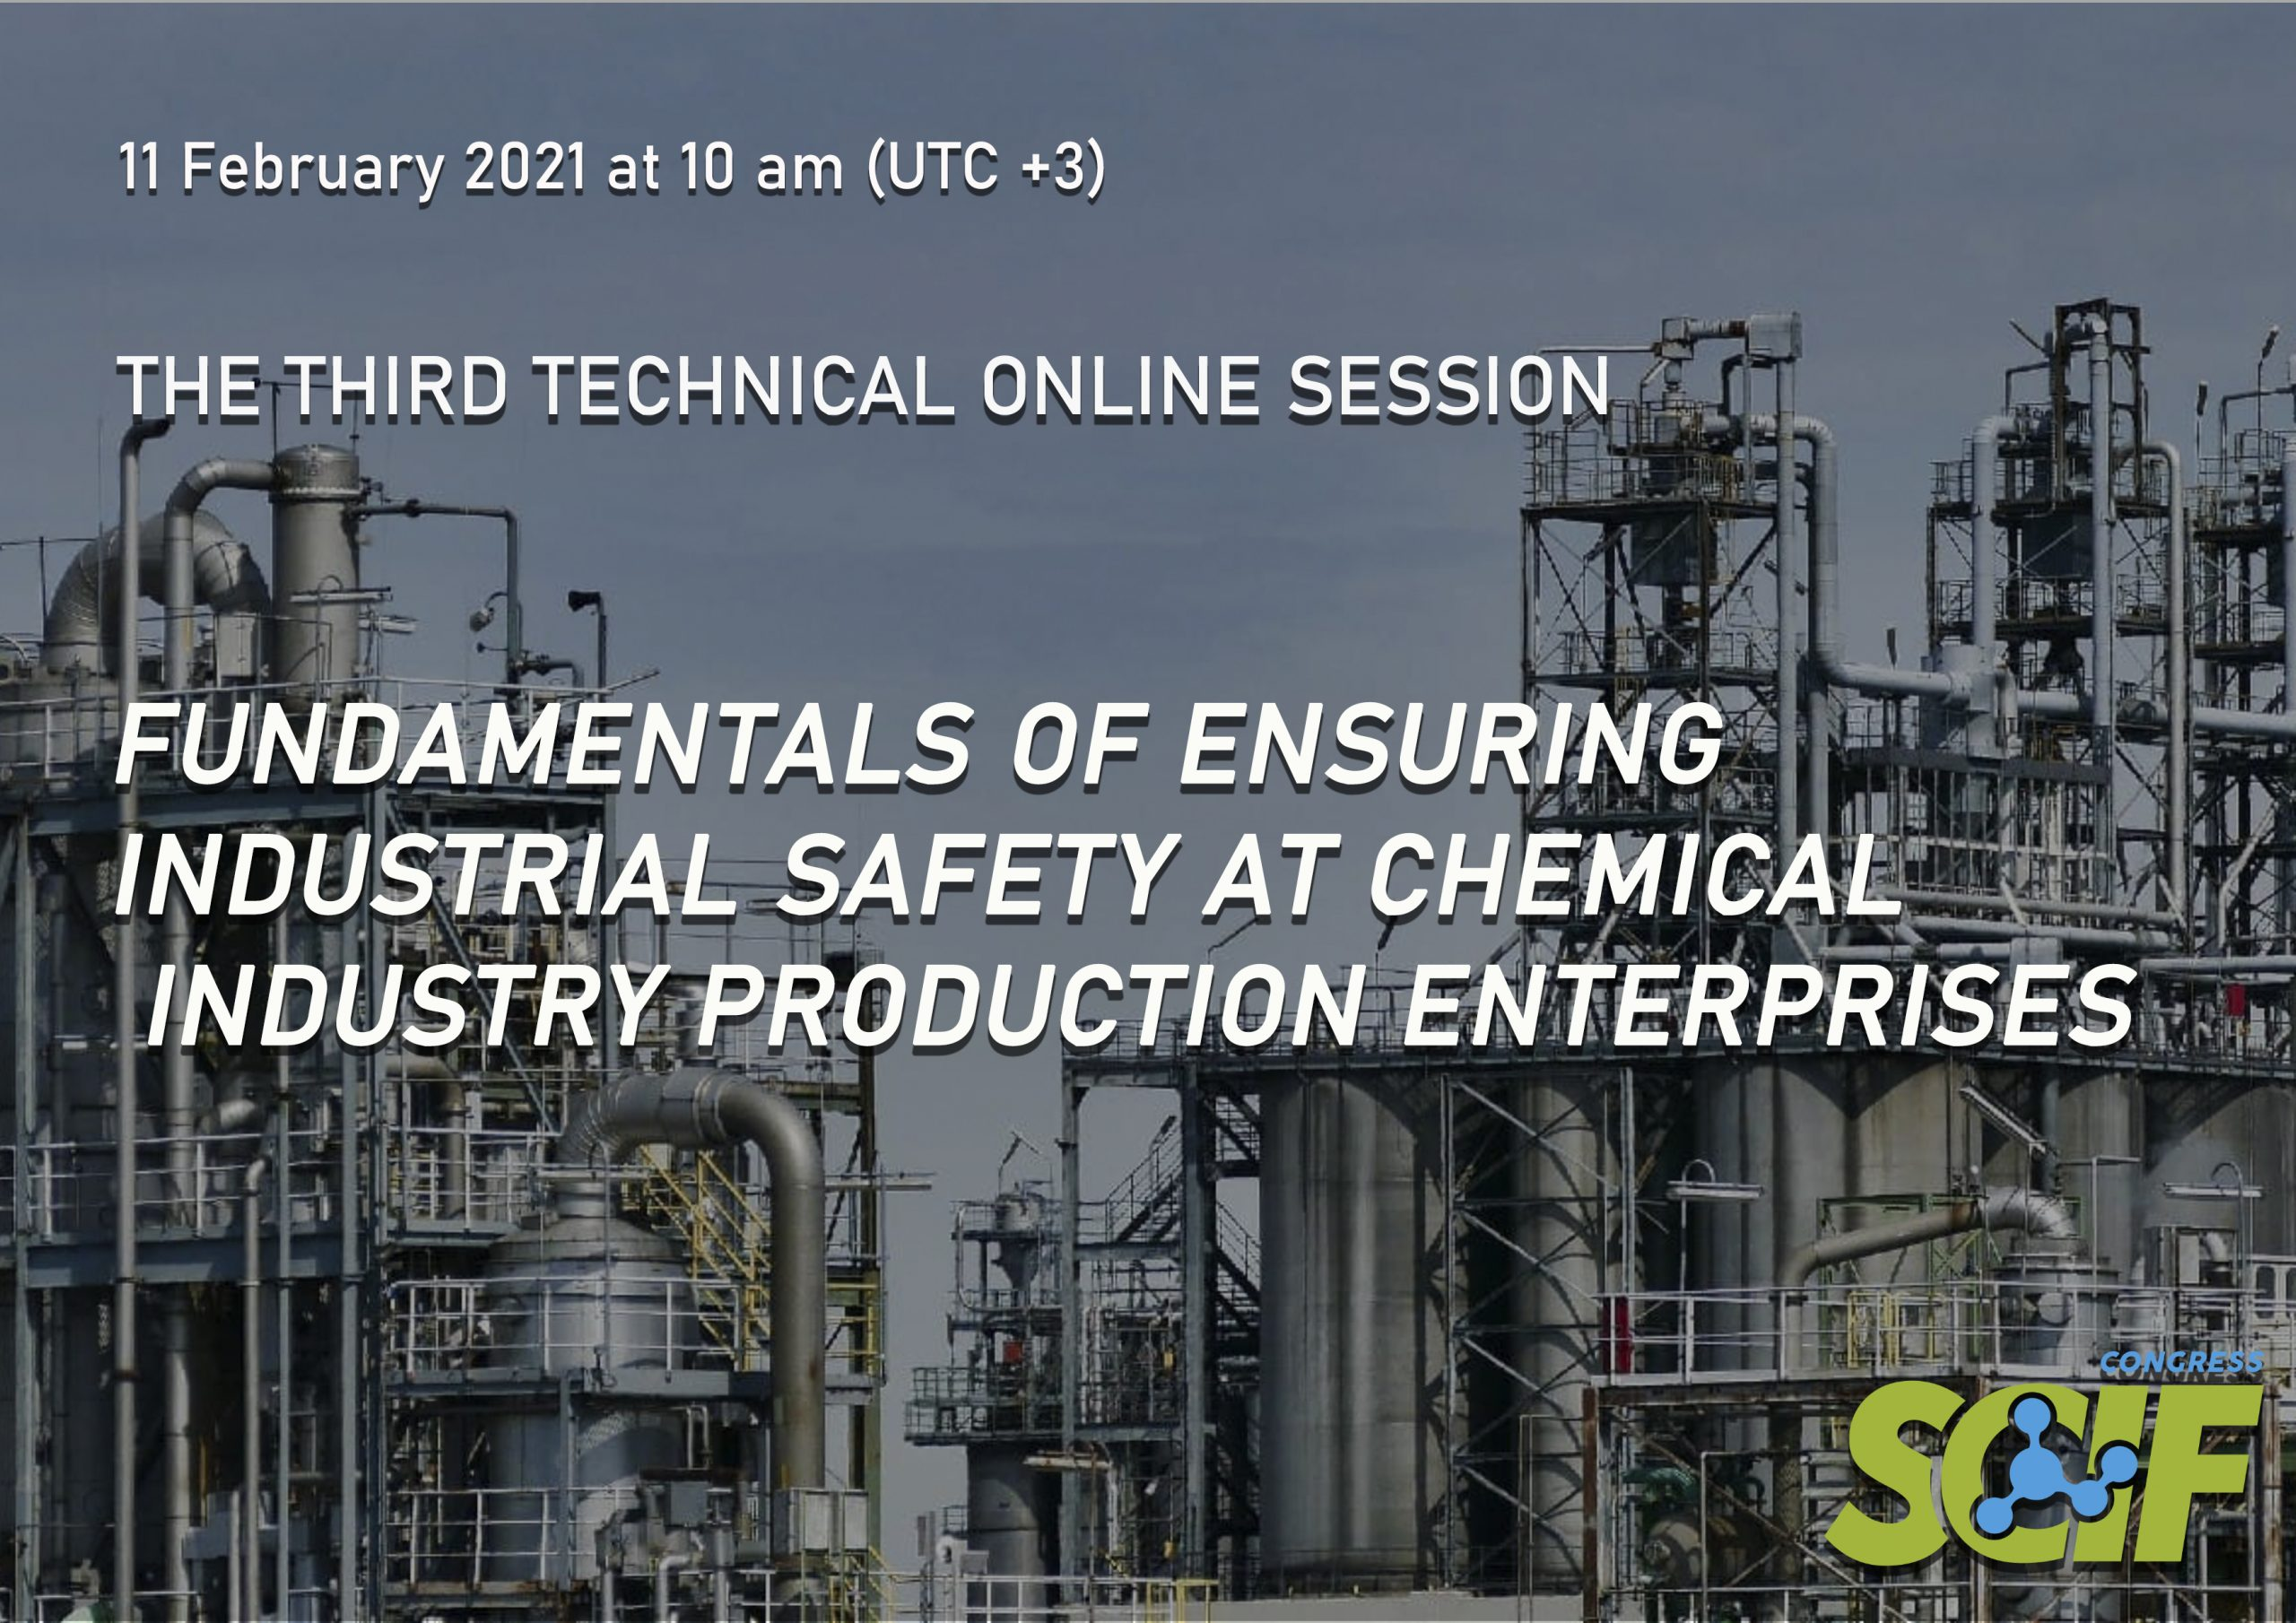 Results of the Third technical online session SCIF